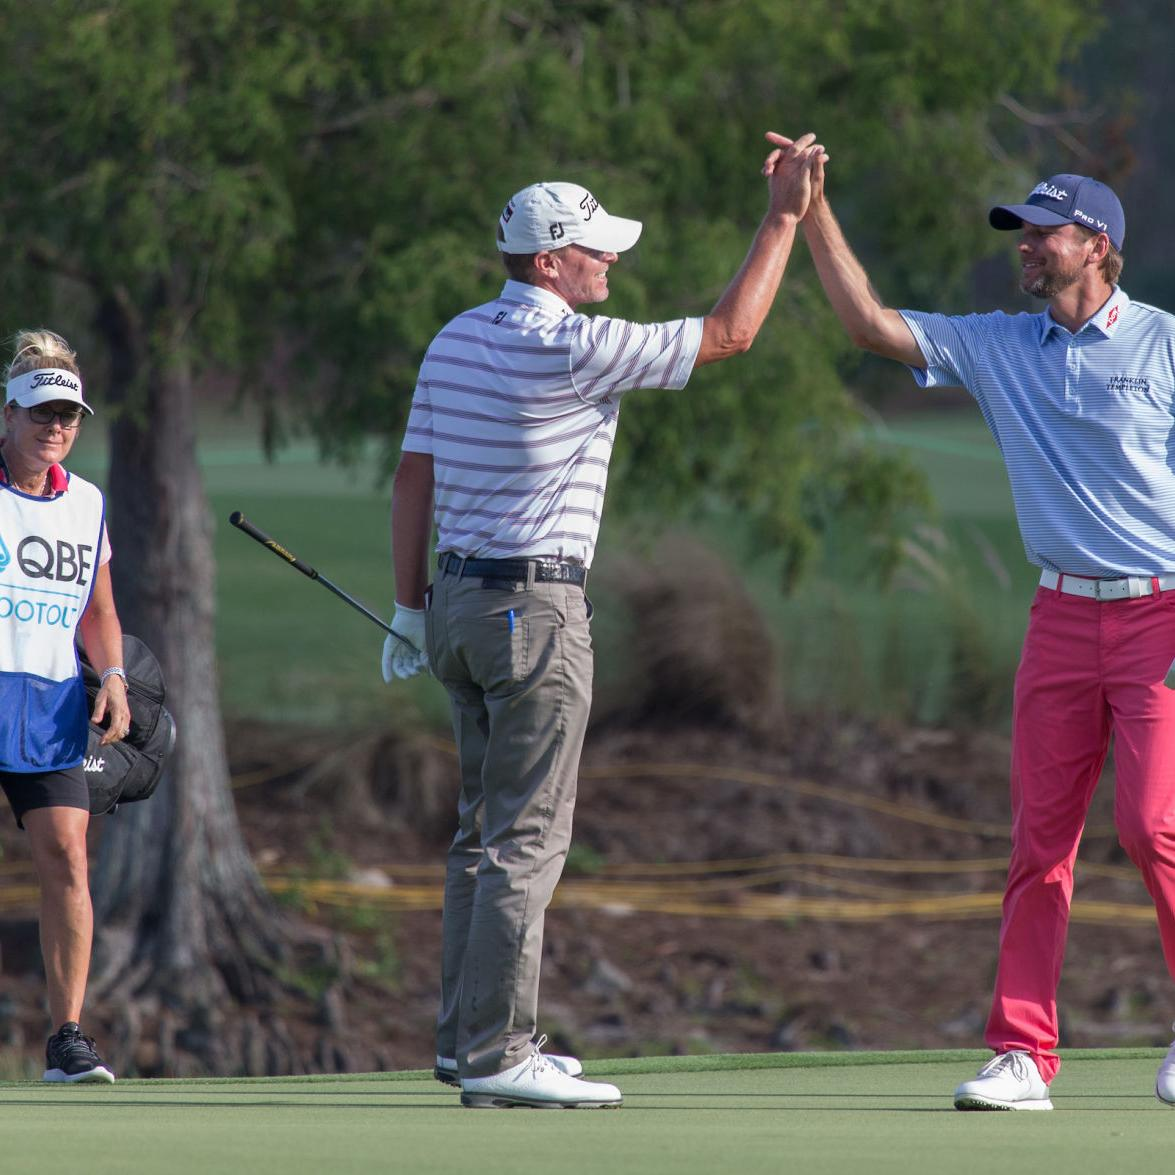 Eagle-birdie finish helps Madison's Steve Stricker, Sean O'Hair grab one-stroke lead after one round of QBE Shootout